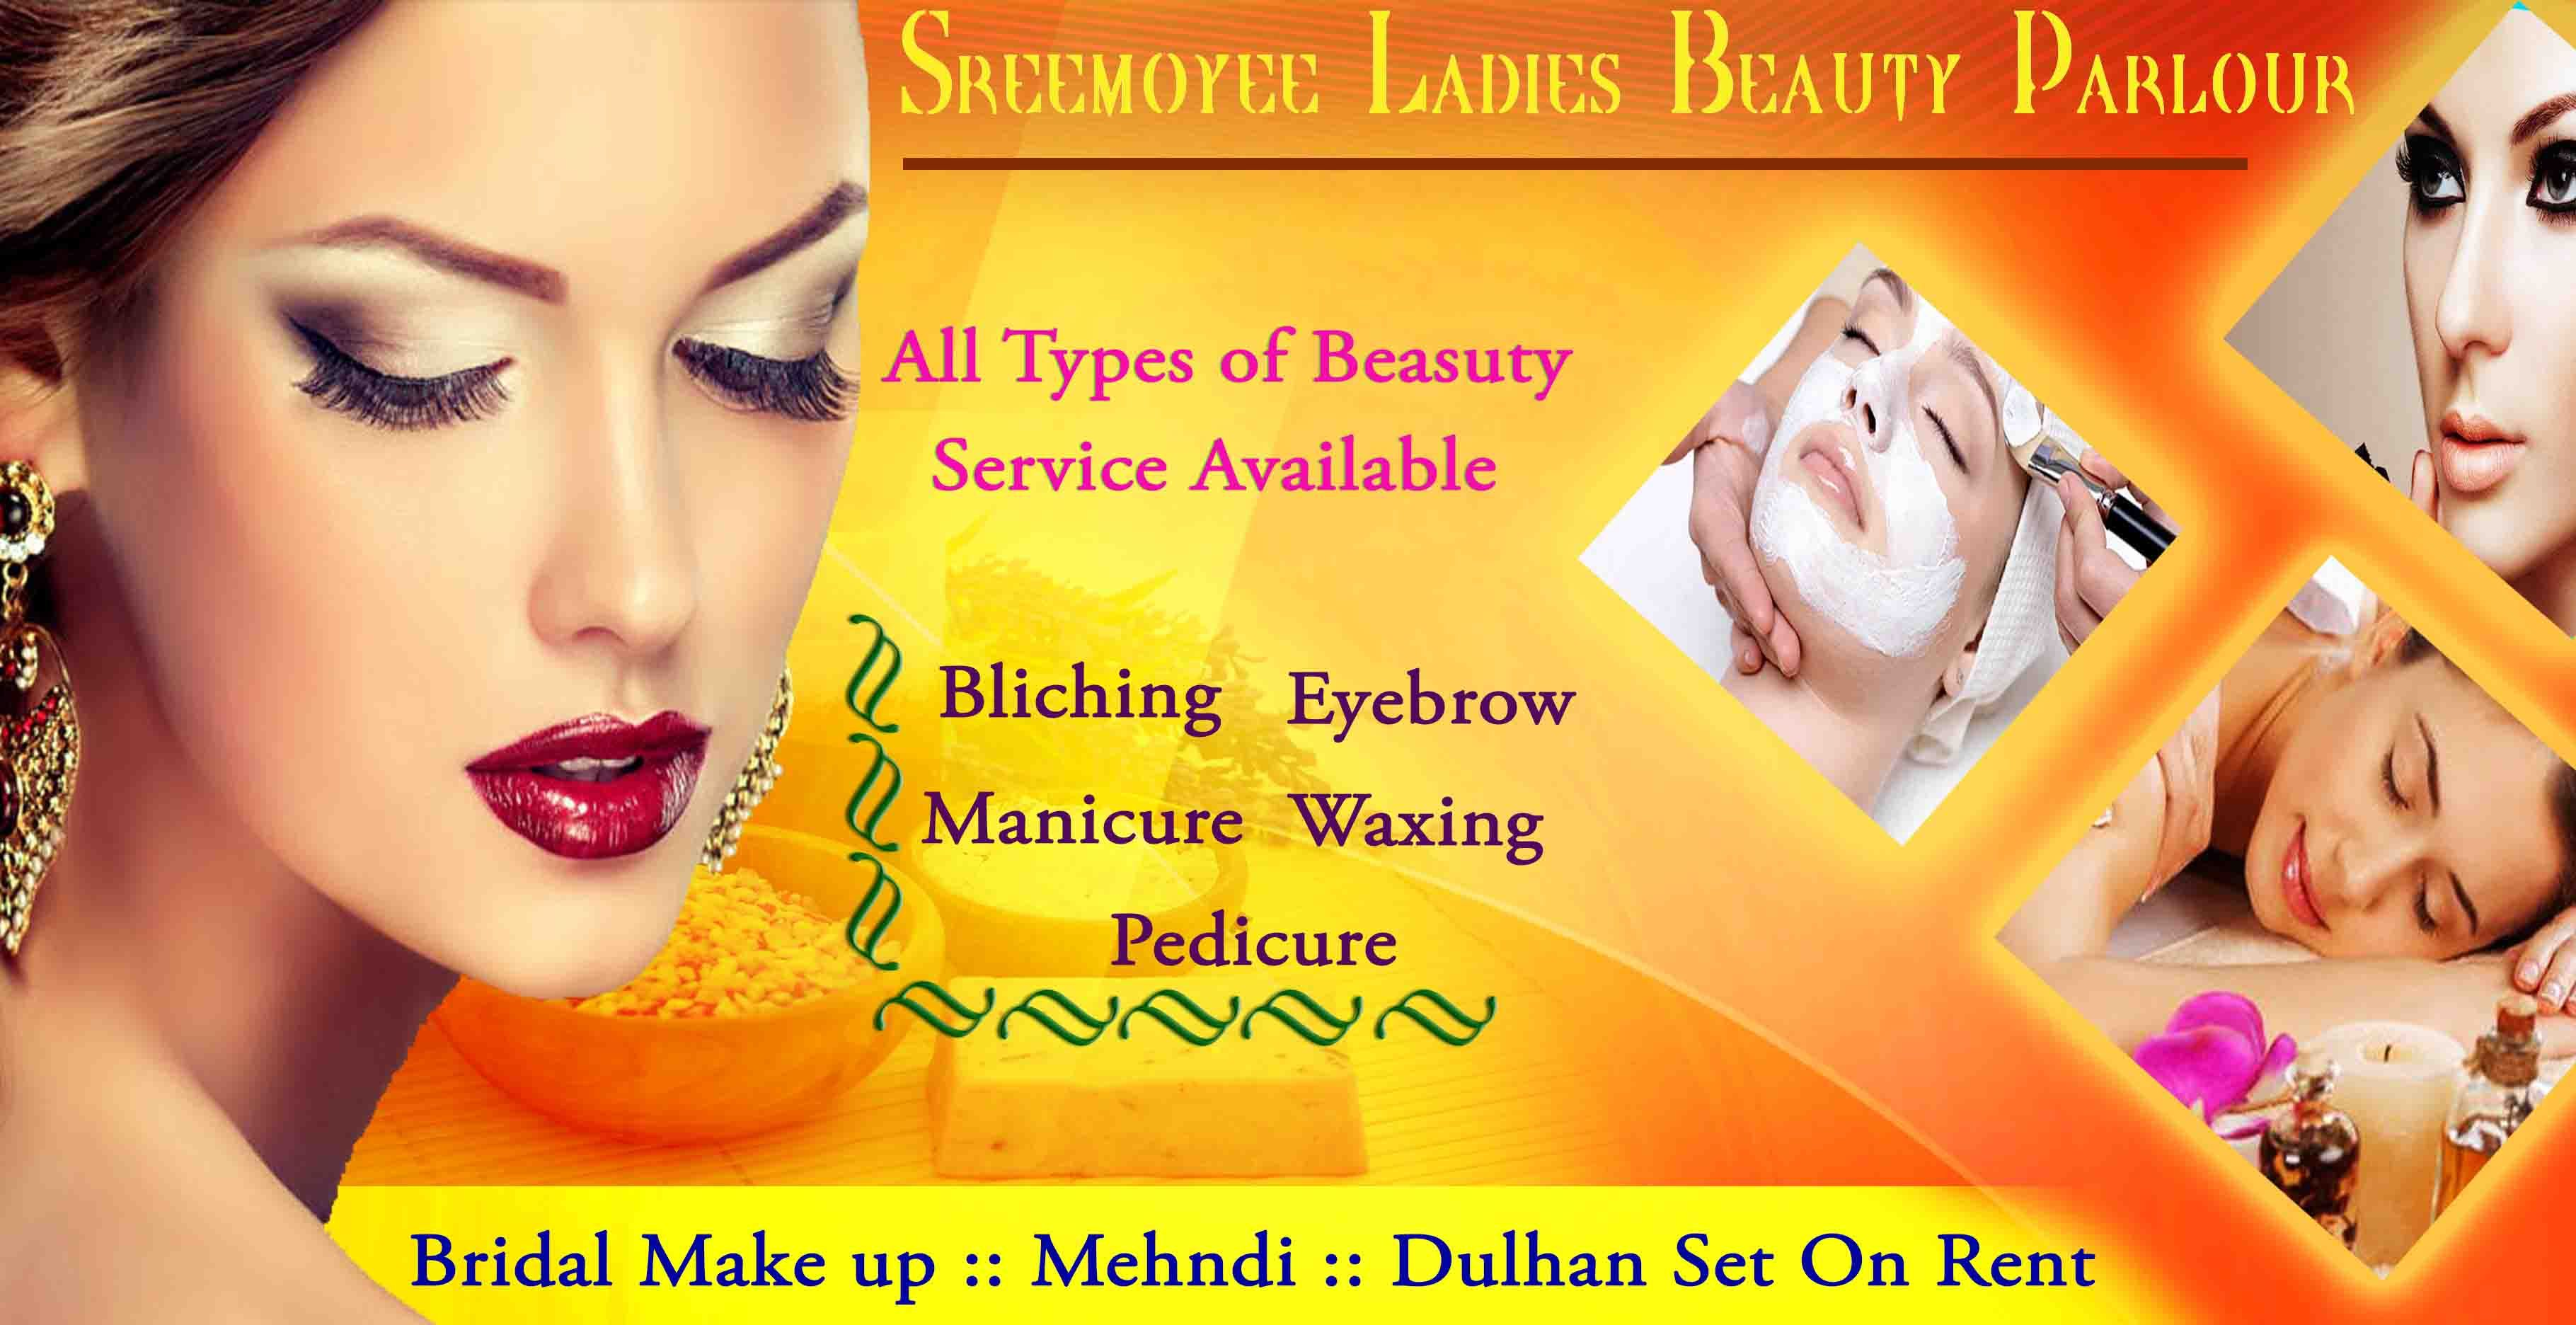 Beauty Parlour Banner Images In 2021 Banner Design Beauty Parlor Best Banner Design